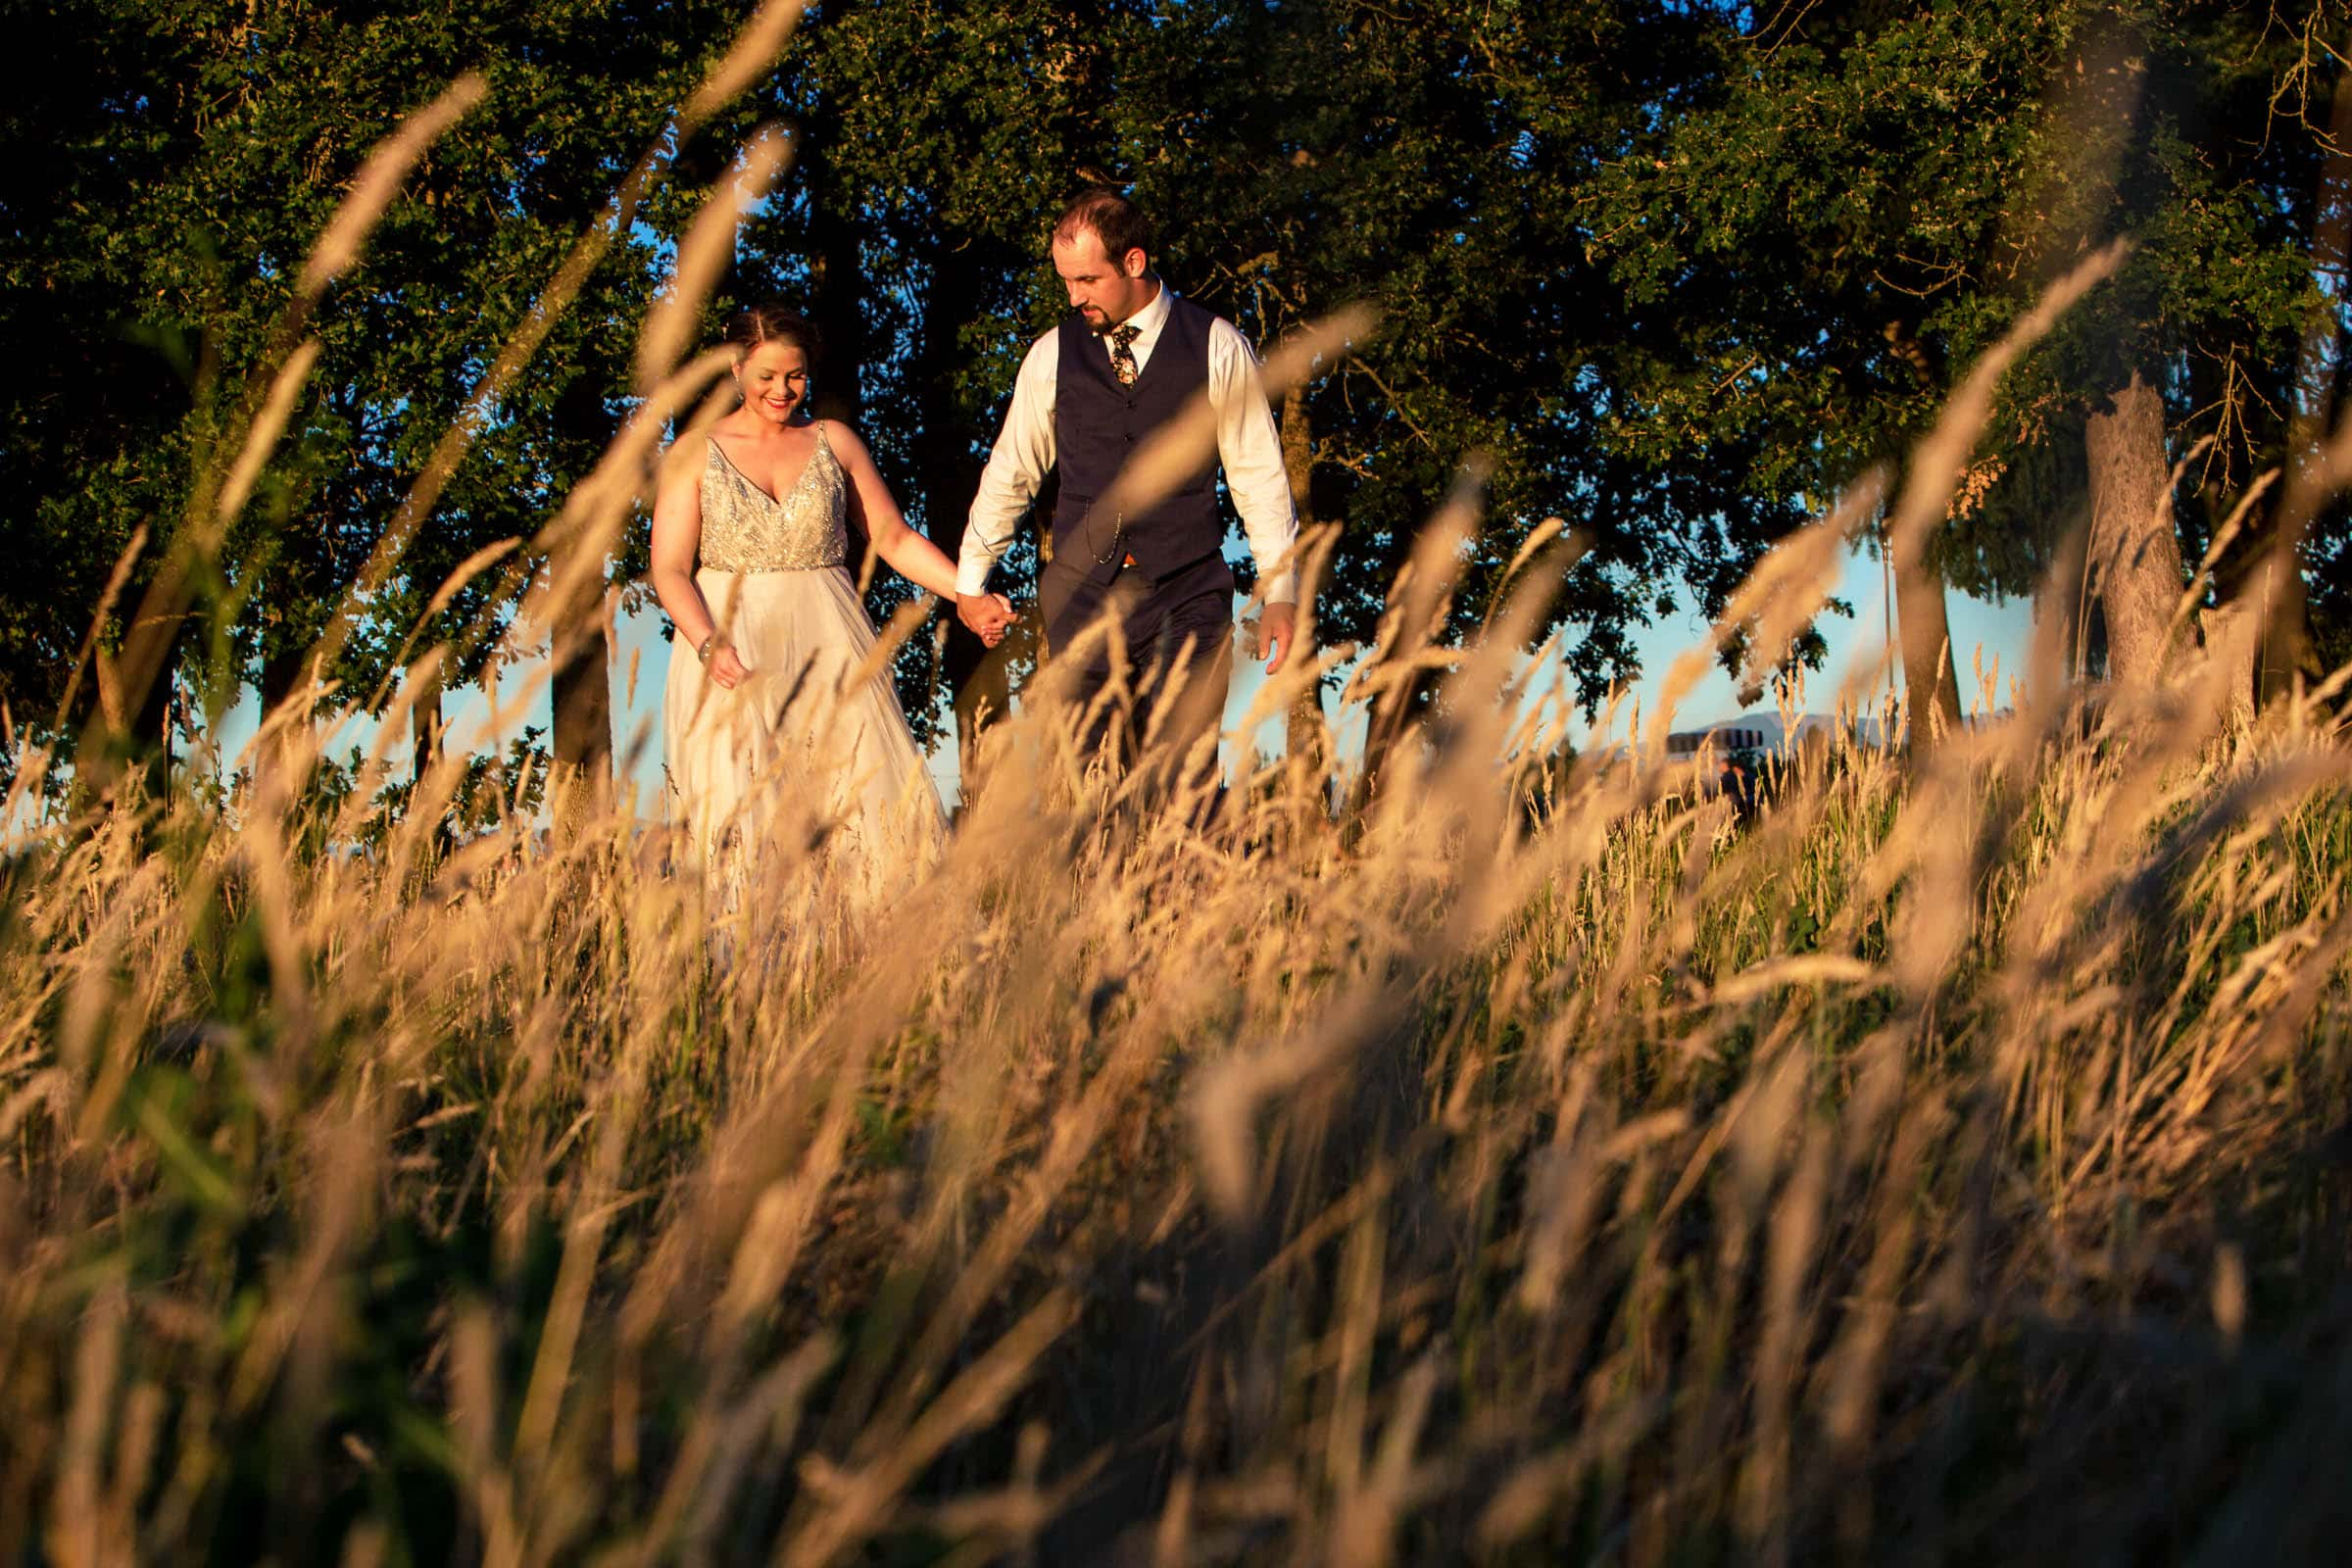 An intimate photo taken through a wheat field during a Postlewait's Country wedding located in the heart of the Willamette Valley between Portland and Salem near Aurora, Oregon